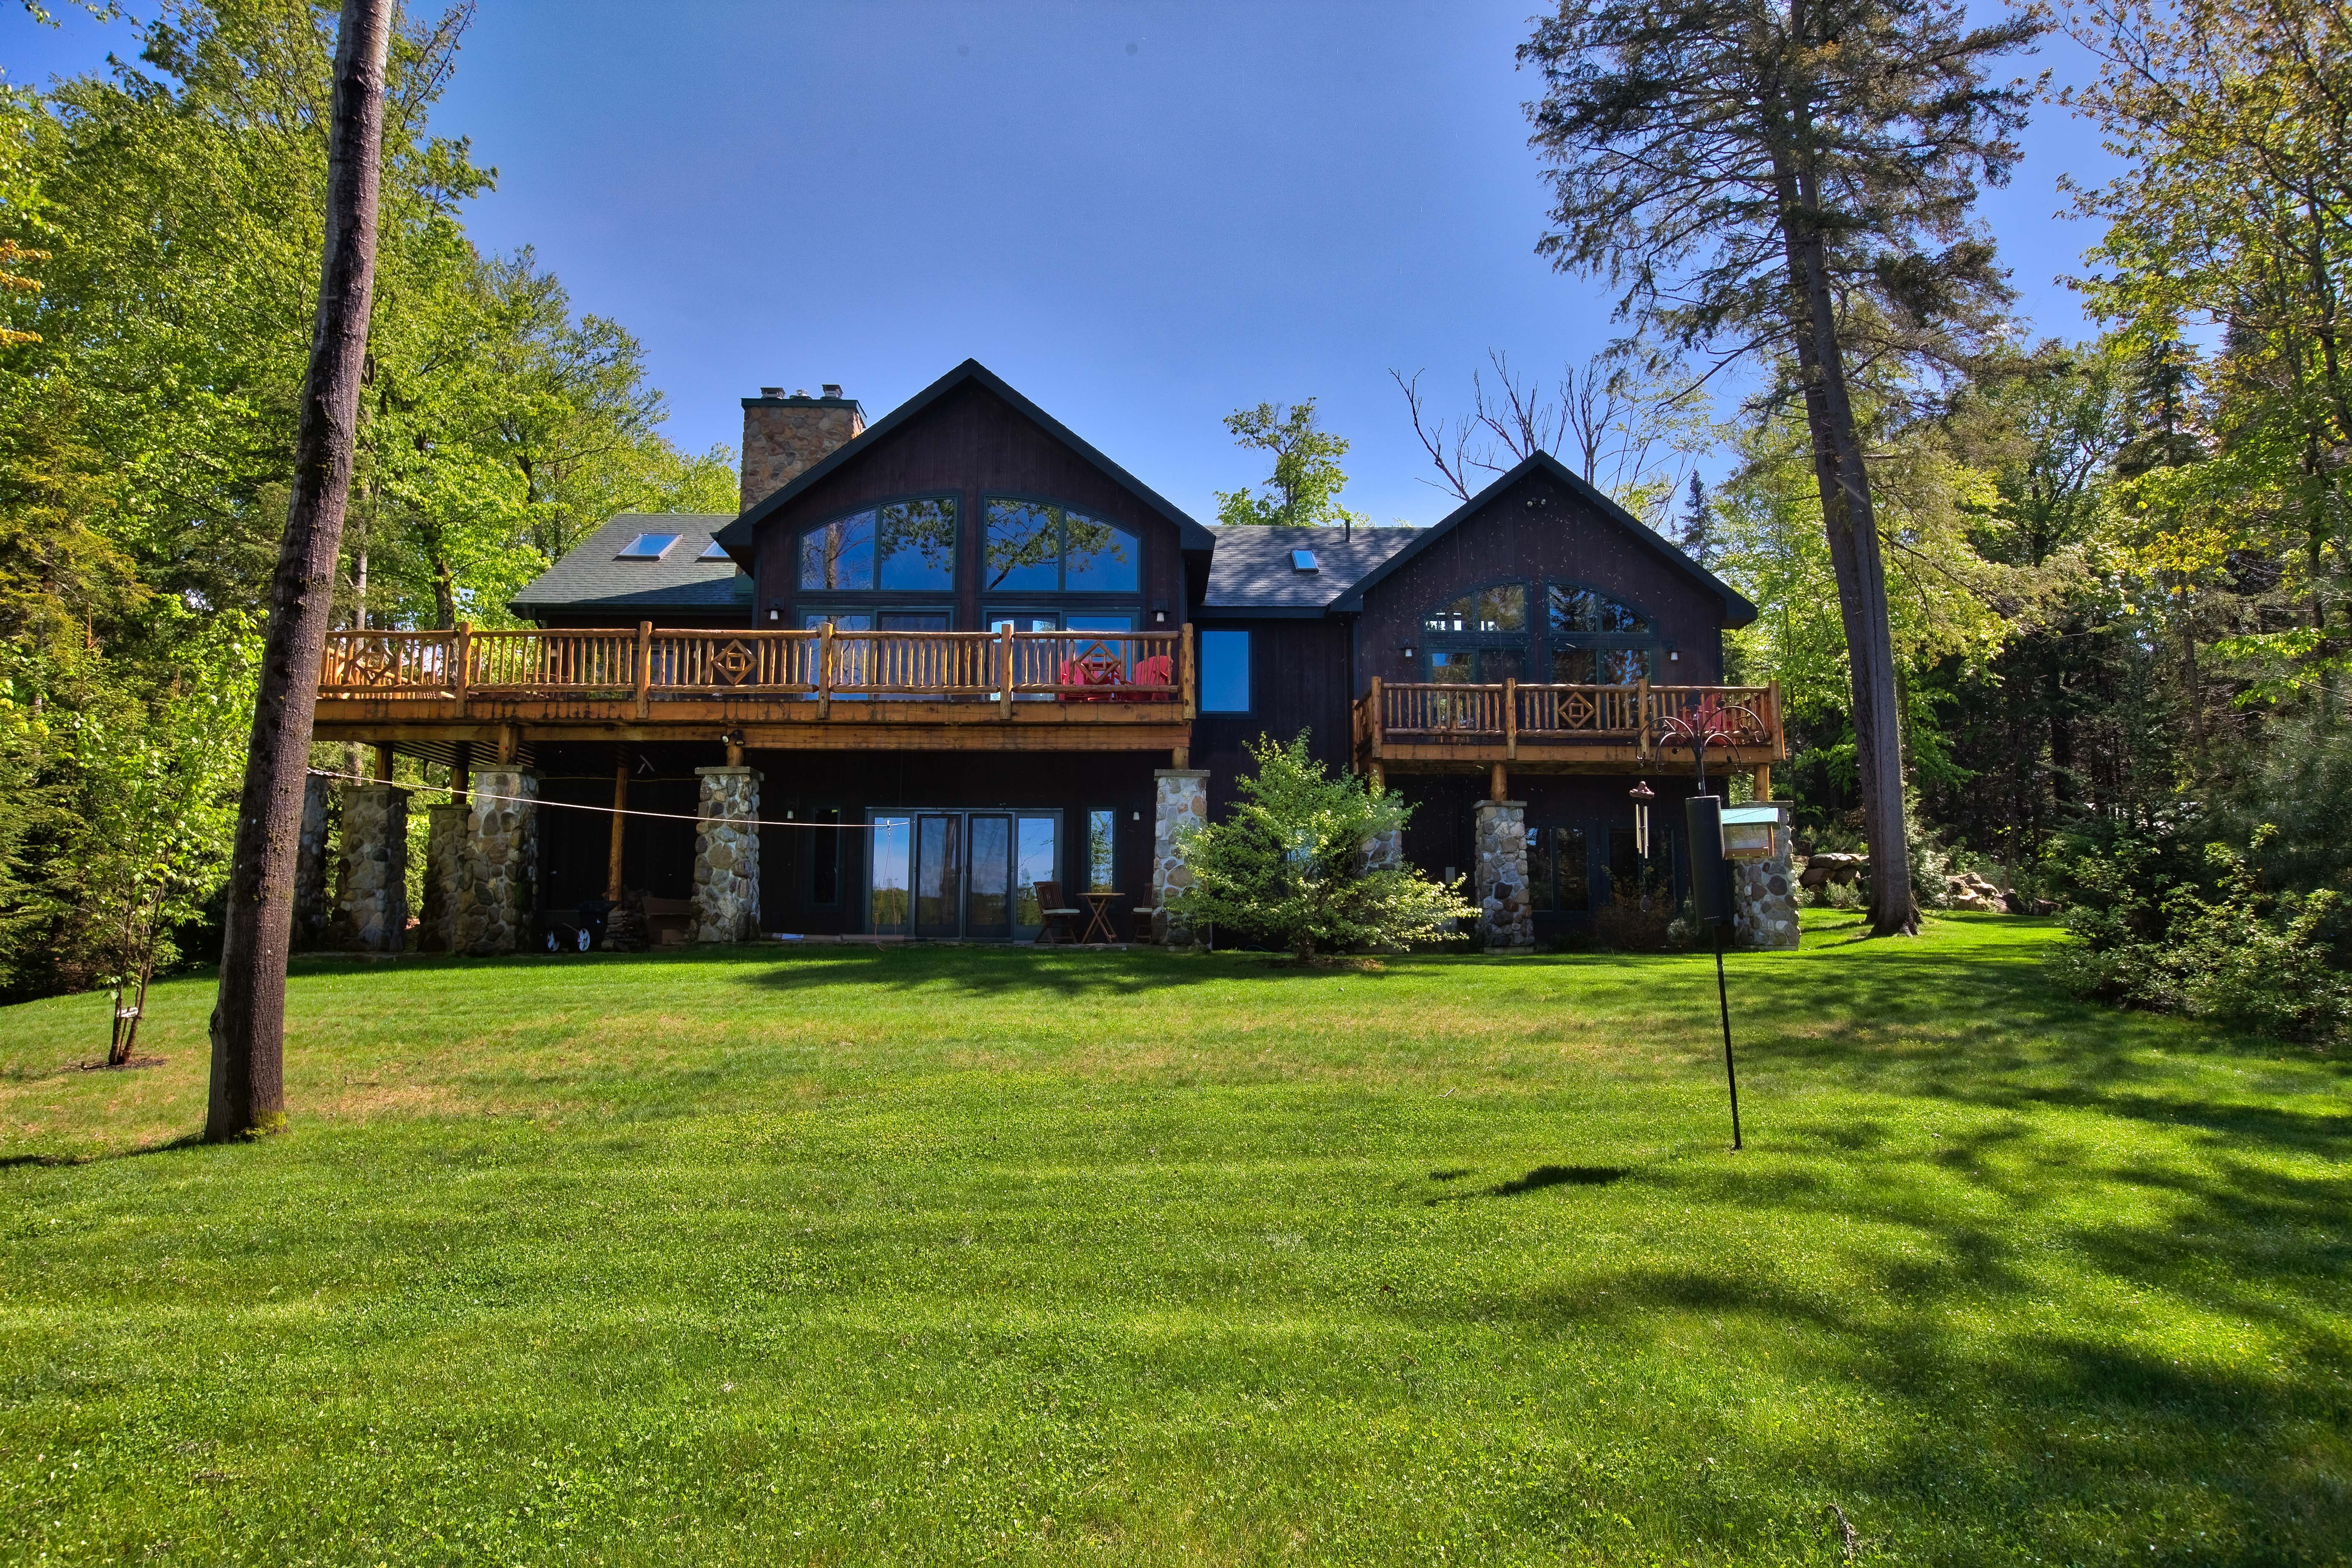 sale img lair l residential real coyote adirondacks york estate adirondack inc rentals hdr homes cabins thomas lake new cabin for merrill s placid